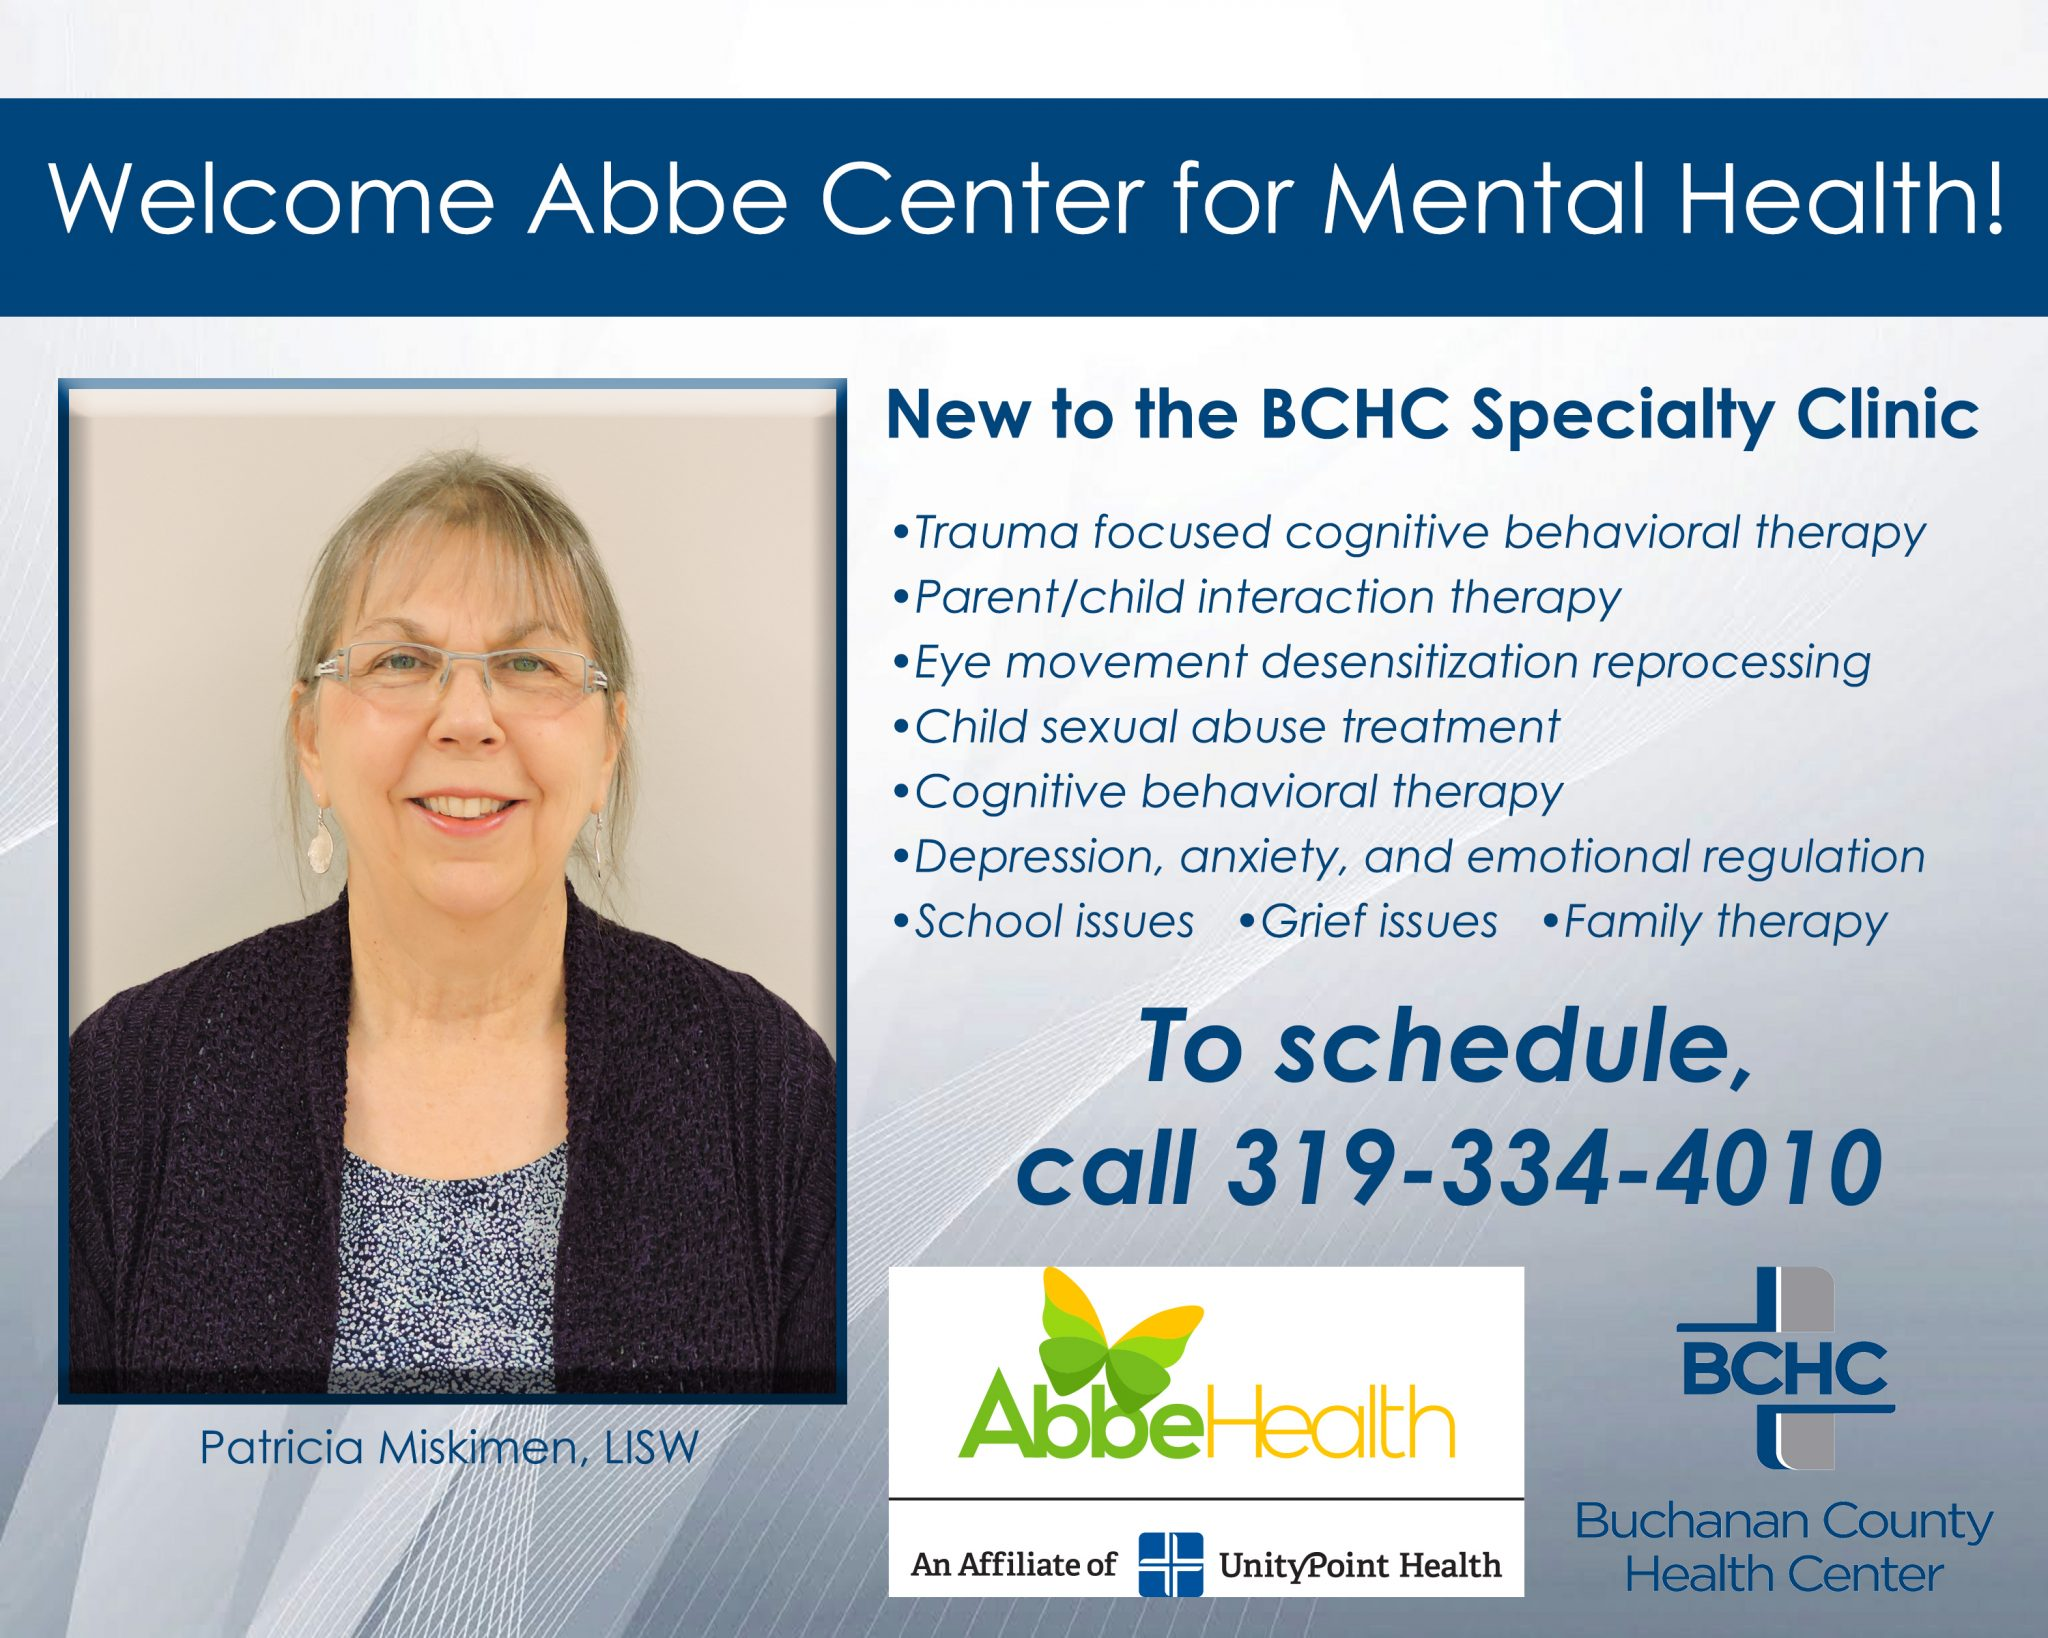 Bchc Specialty Clinic To Offer Mental Health Services Through Abbe